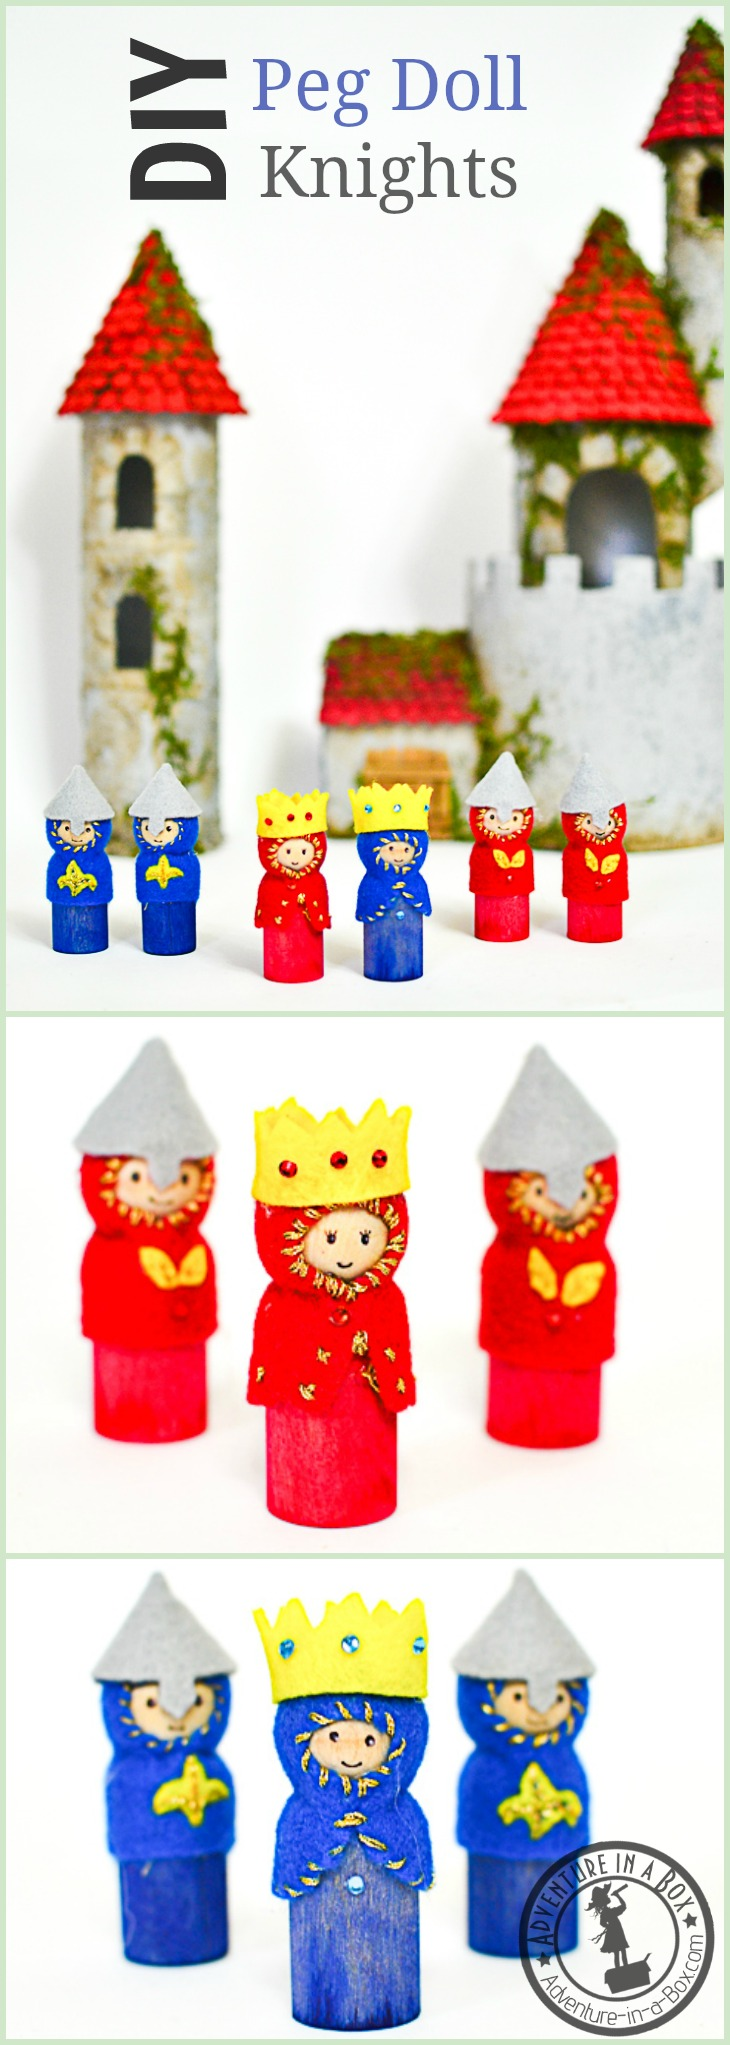 DIY Wooden Peg Doll Knights, Kings and Queens: When kids are going through a castle stage or studying medieval history, this tutorial will help them create their own army of knights out of wooden peg dolls. Armourer's approved!